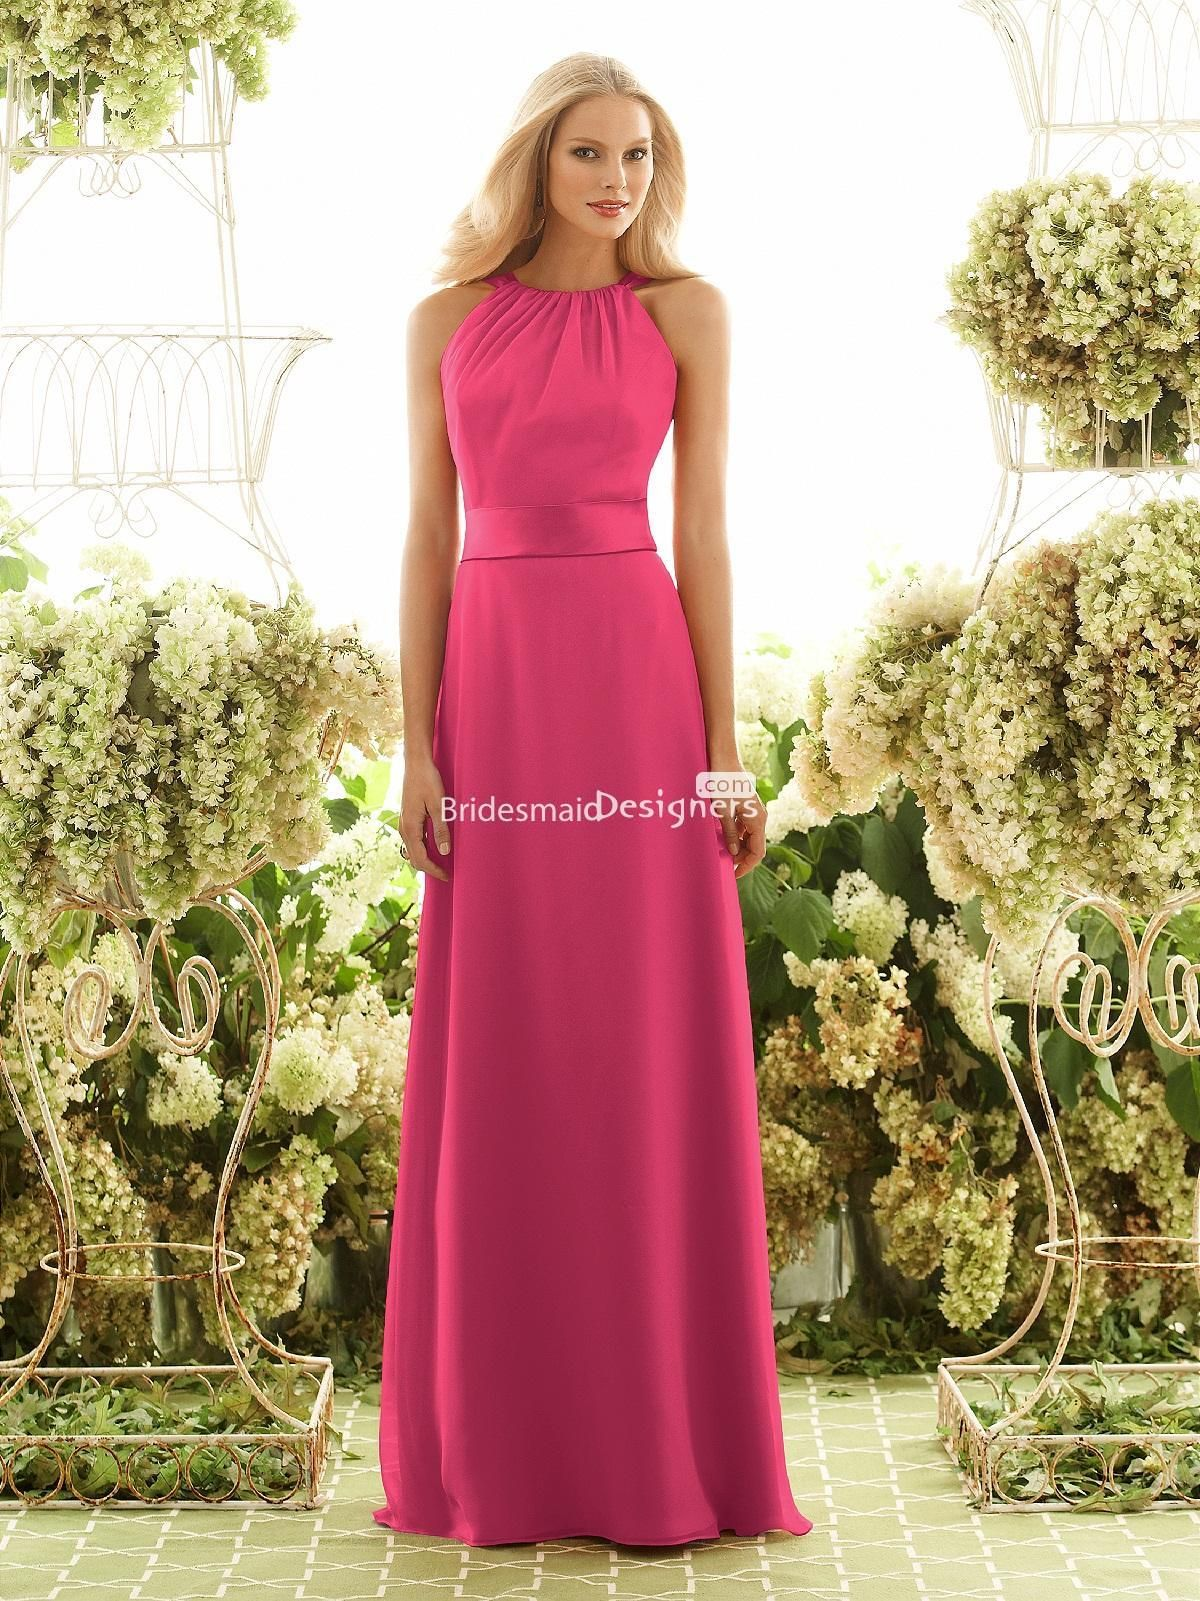 Stunning fuschia halter sleeveless long chiffon bridesmaid dress stunning fuschia halter sleeveless long chiffon bridesmaid dress with satin sash and bow on back ombrellifo Images